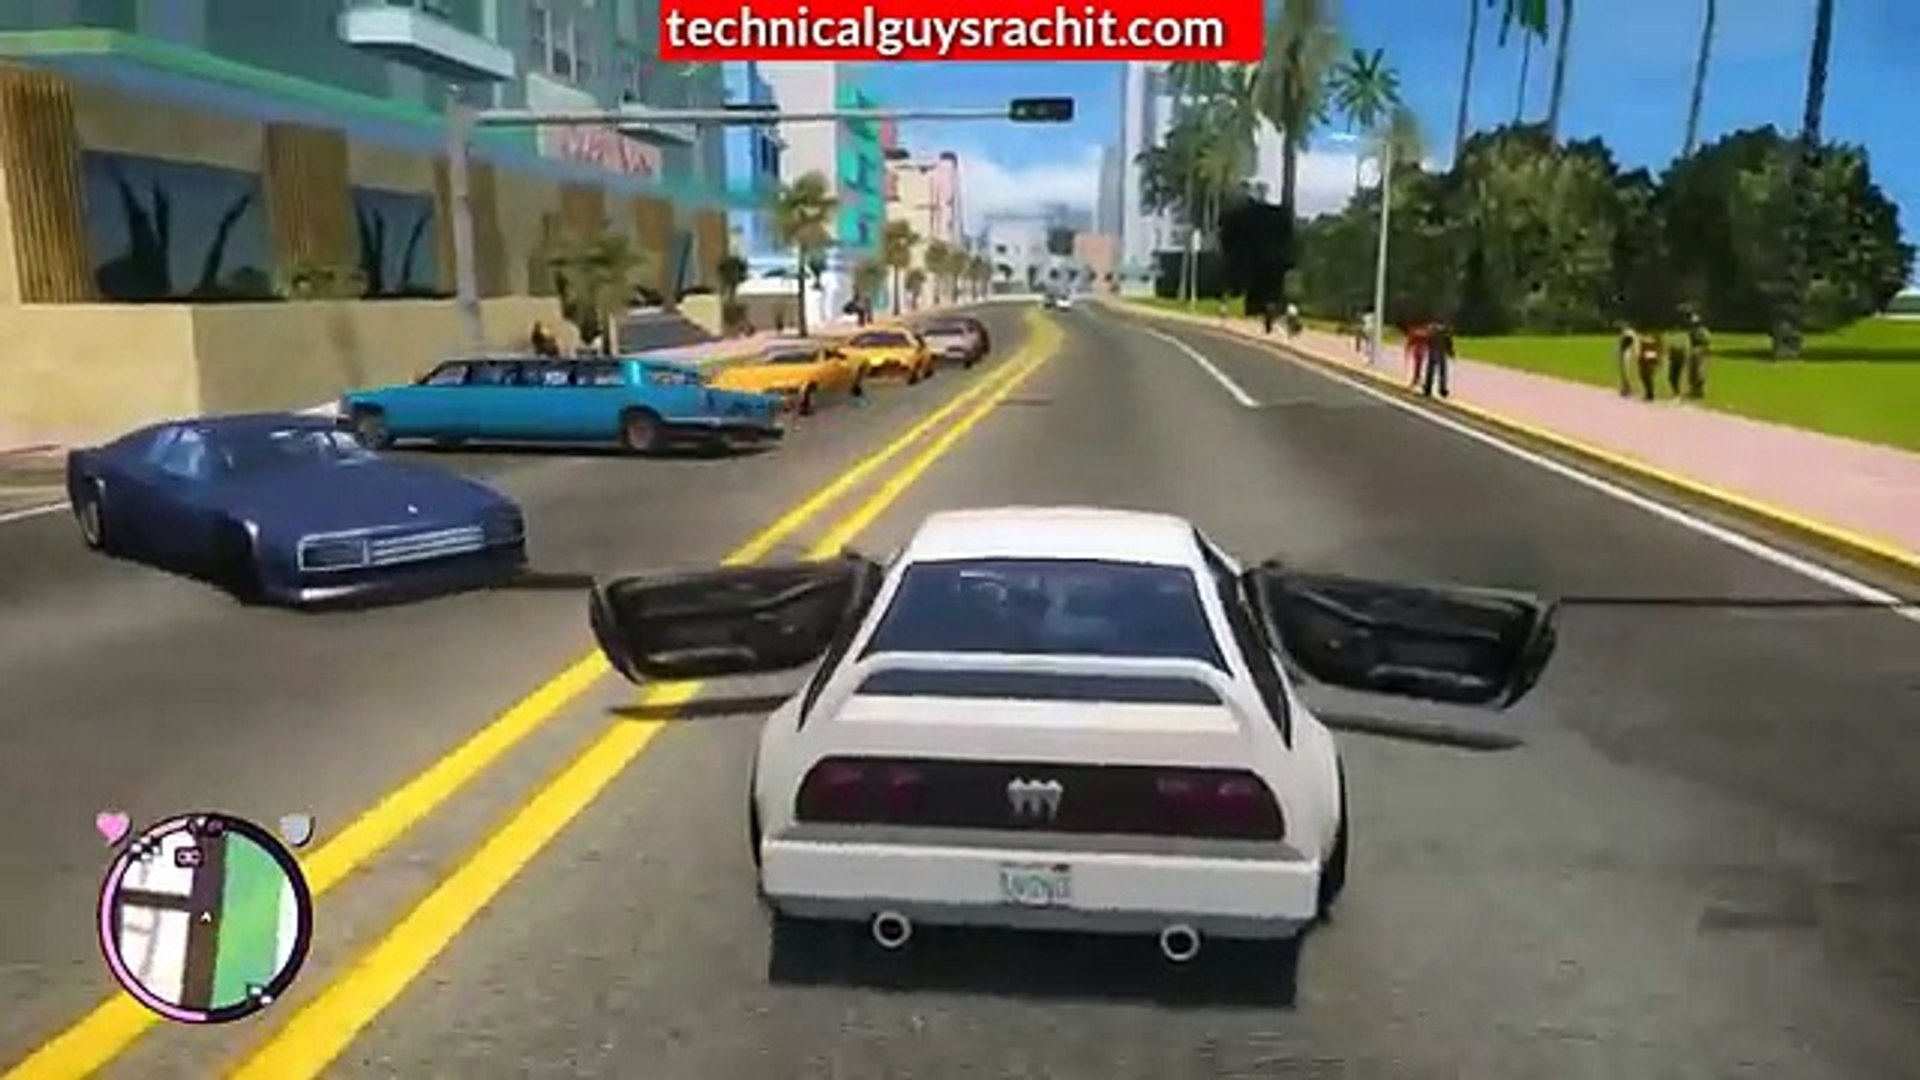 GTA Vice City Android- Install Ultra ENB Graphics Modern Mod in Android